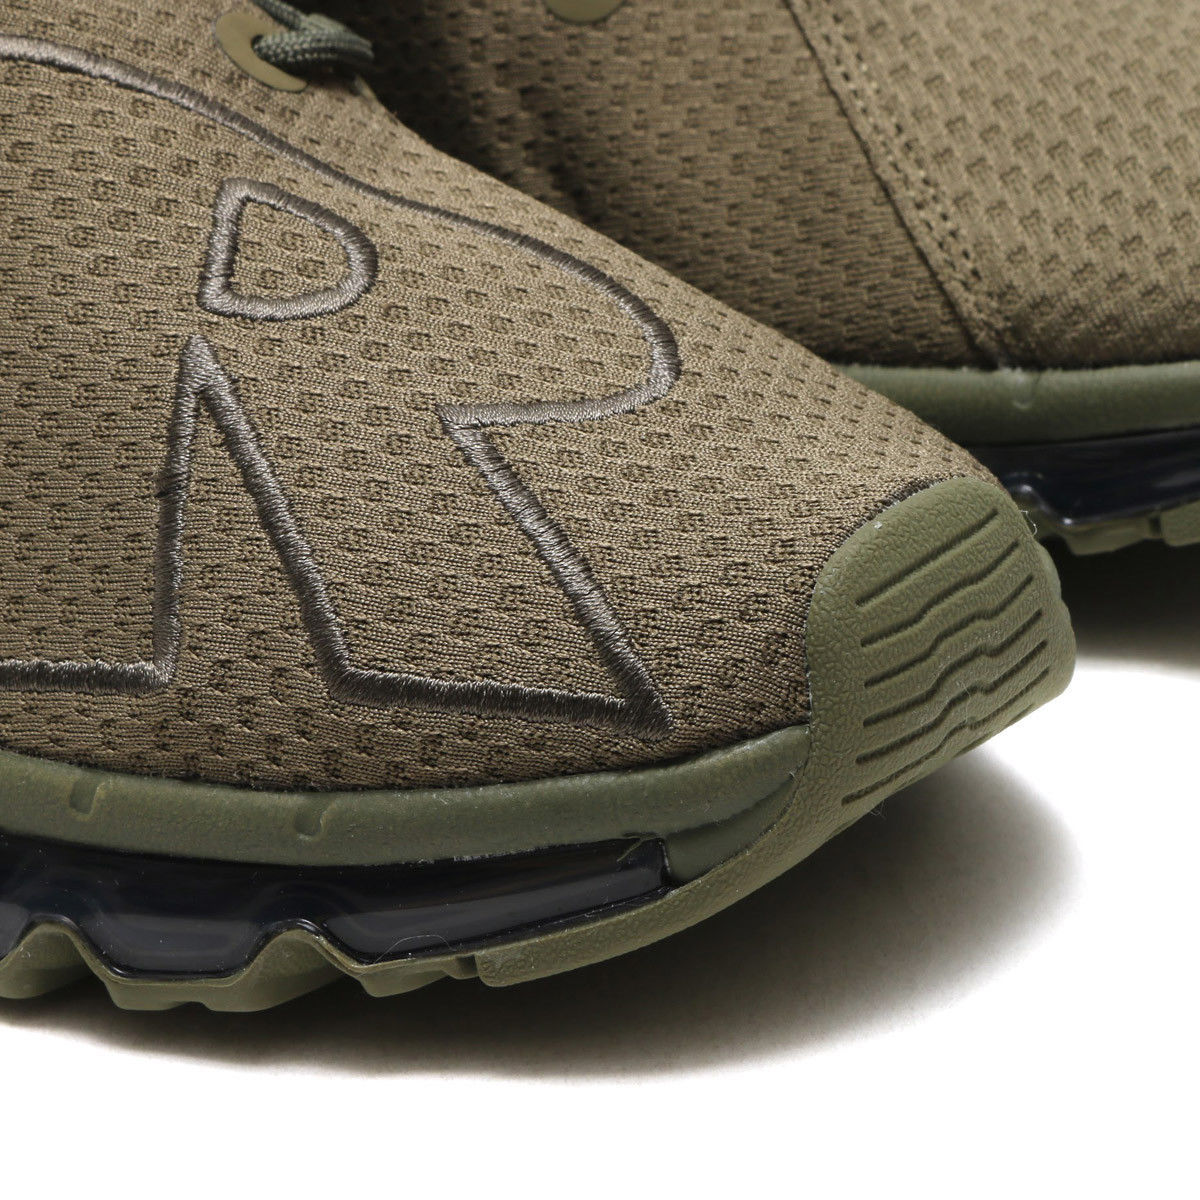 Nike Air Max Flair Running Shoes Olive and 50 similar items